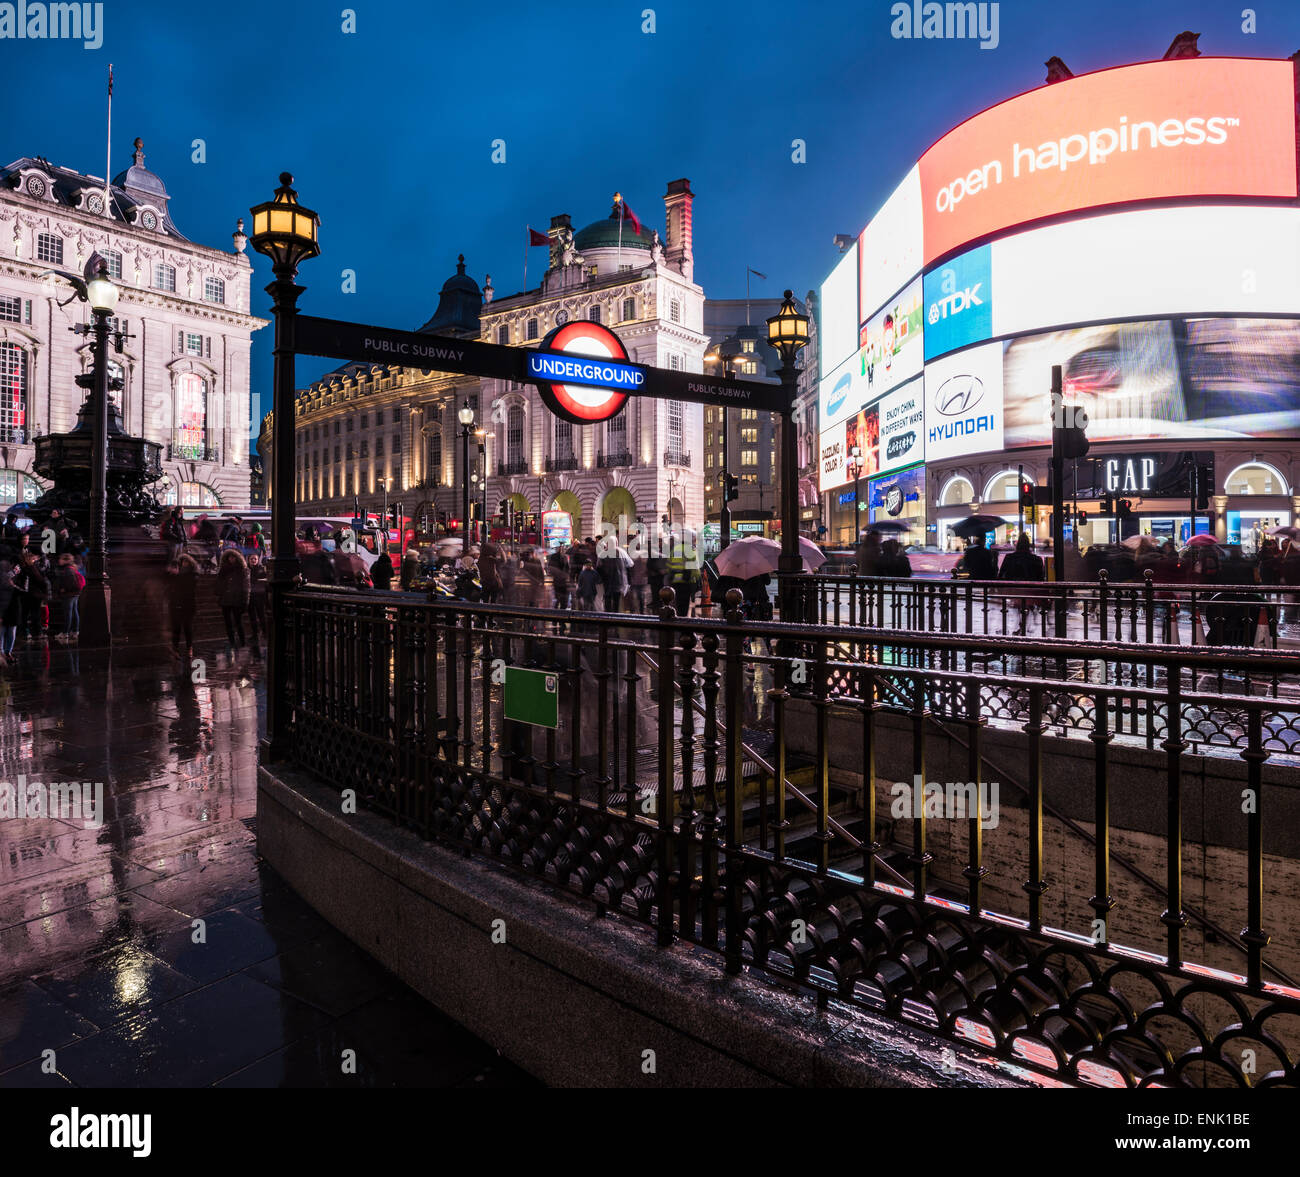 Piccadily Circus at night, London, England, United Kingdom, Europe - Stock Image